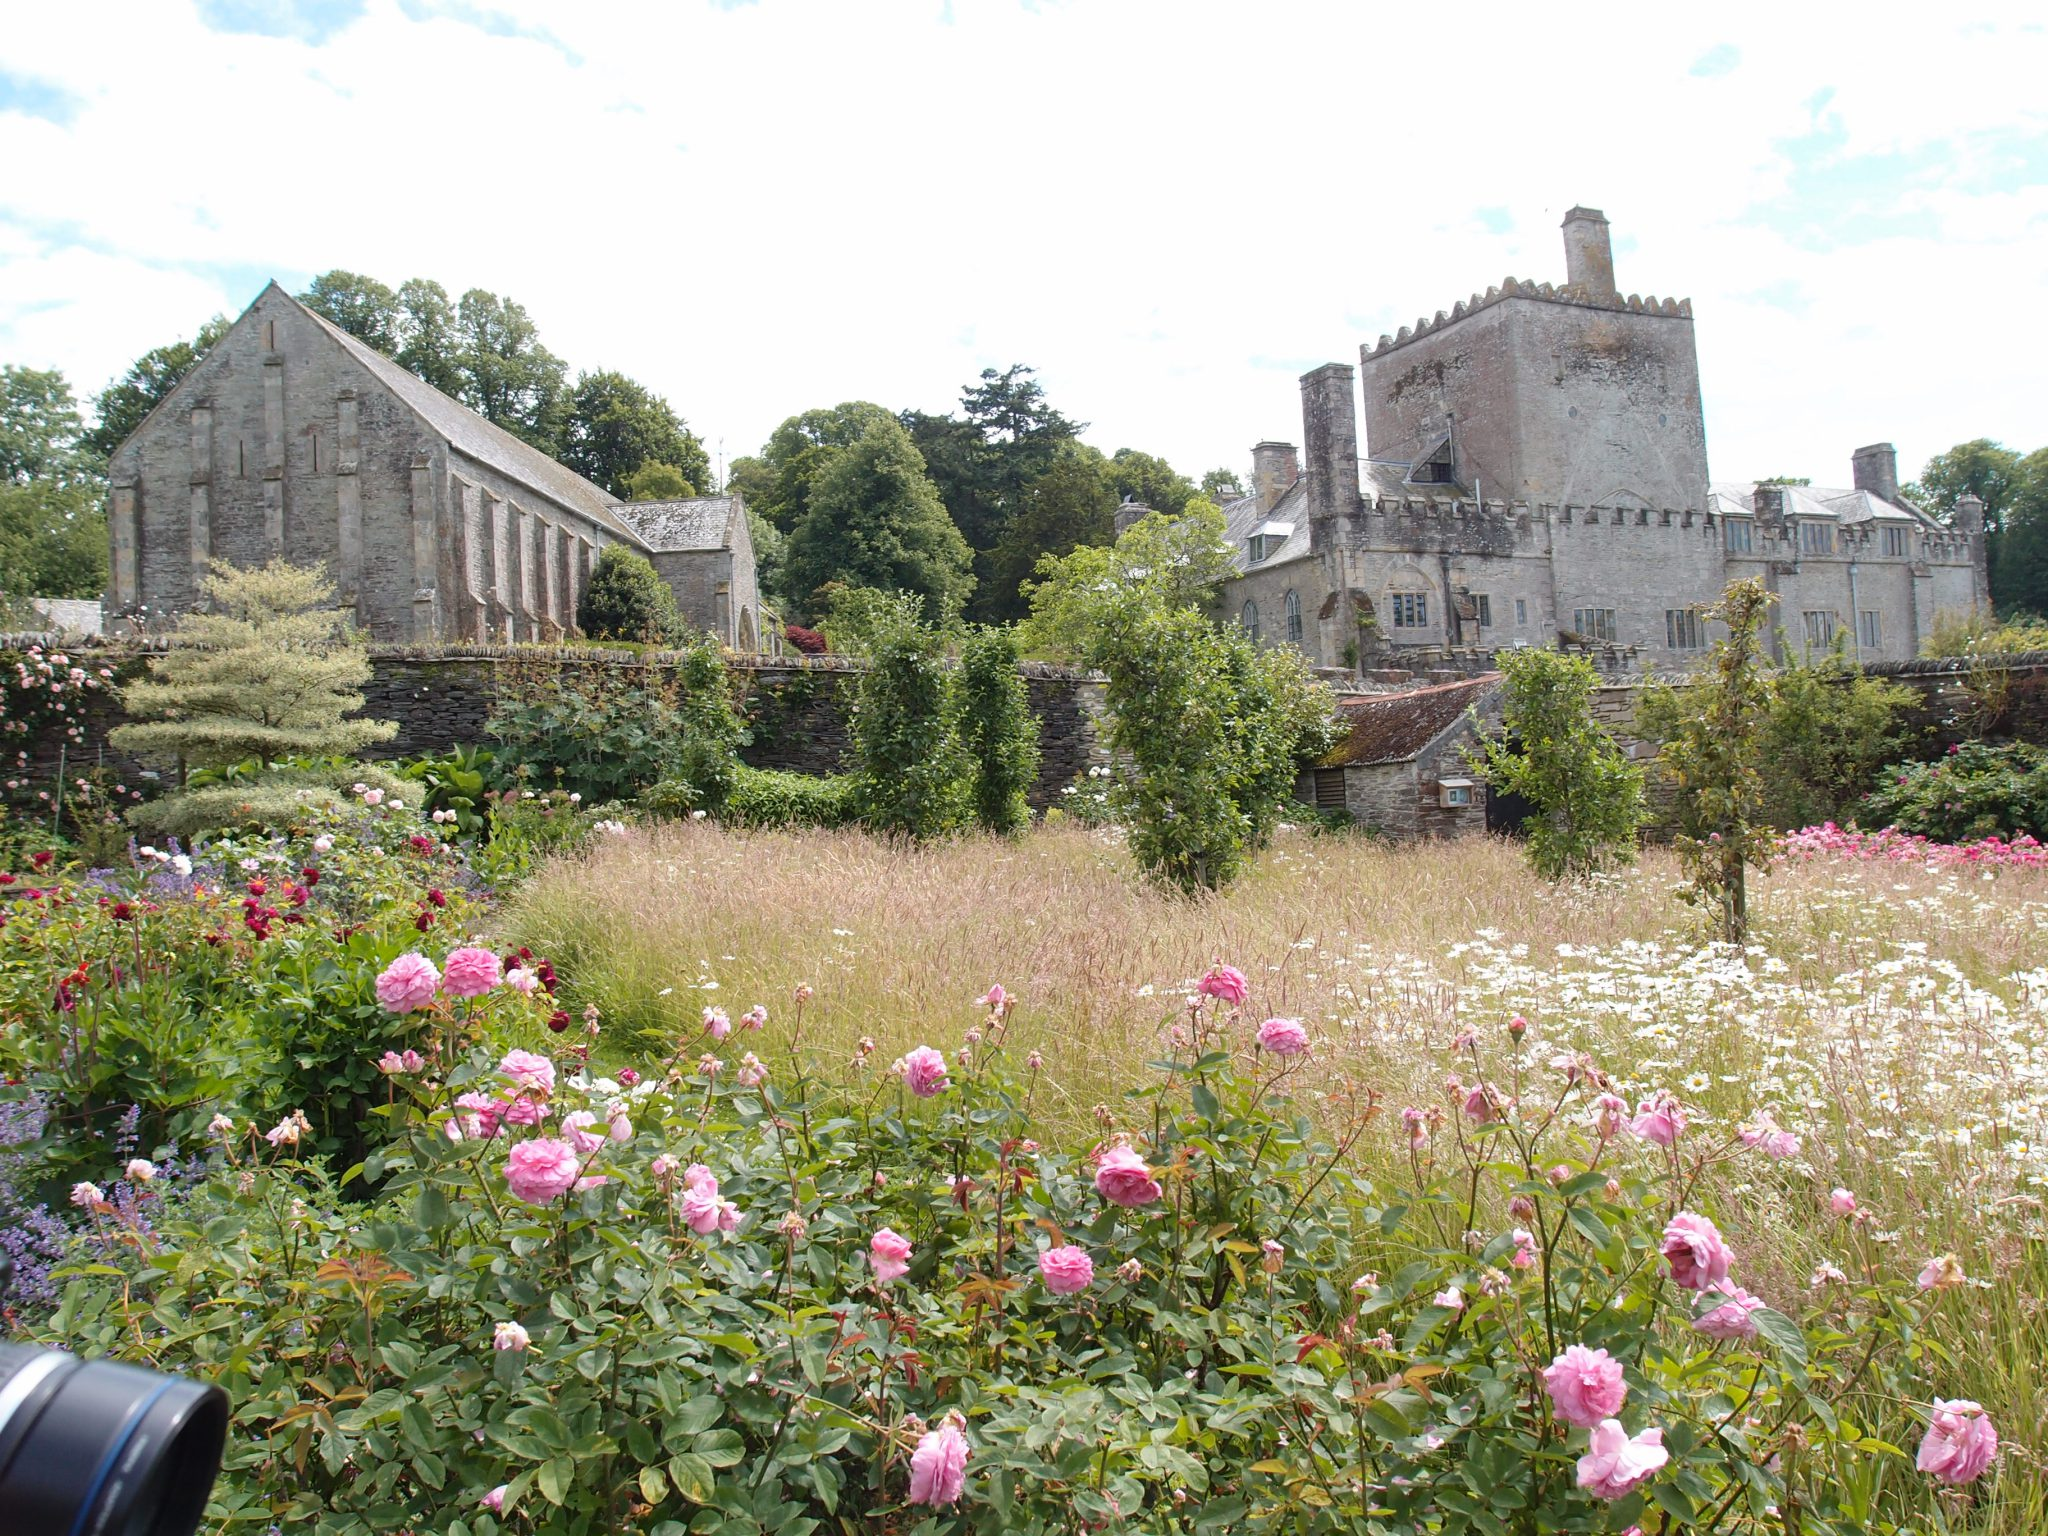 The Great Barn, and the Abbey, as seen from within the Kitchen Garden.